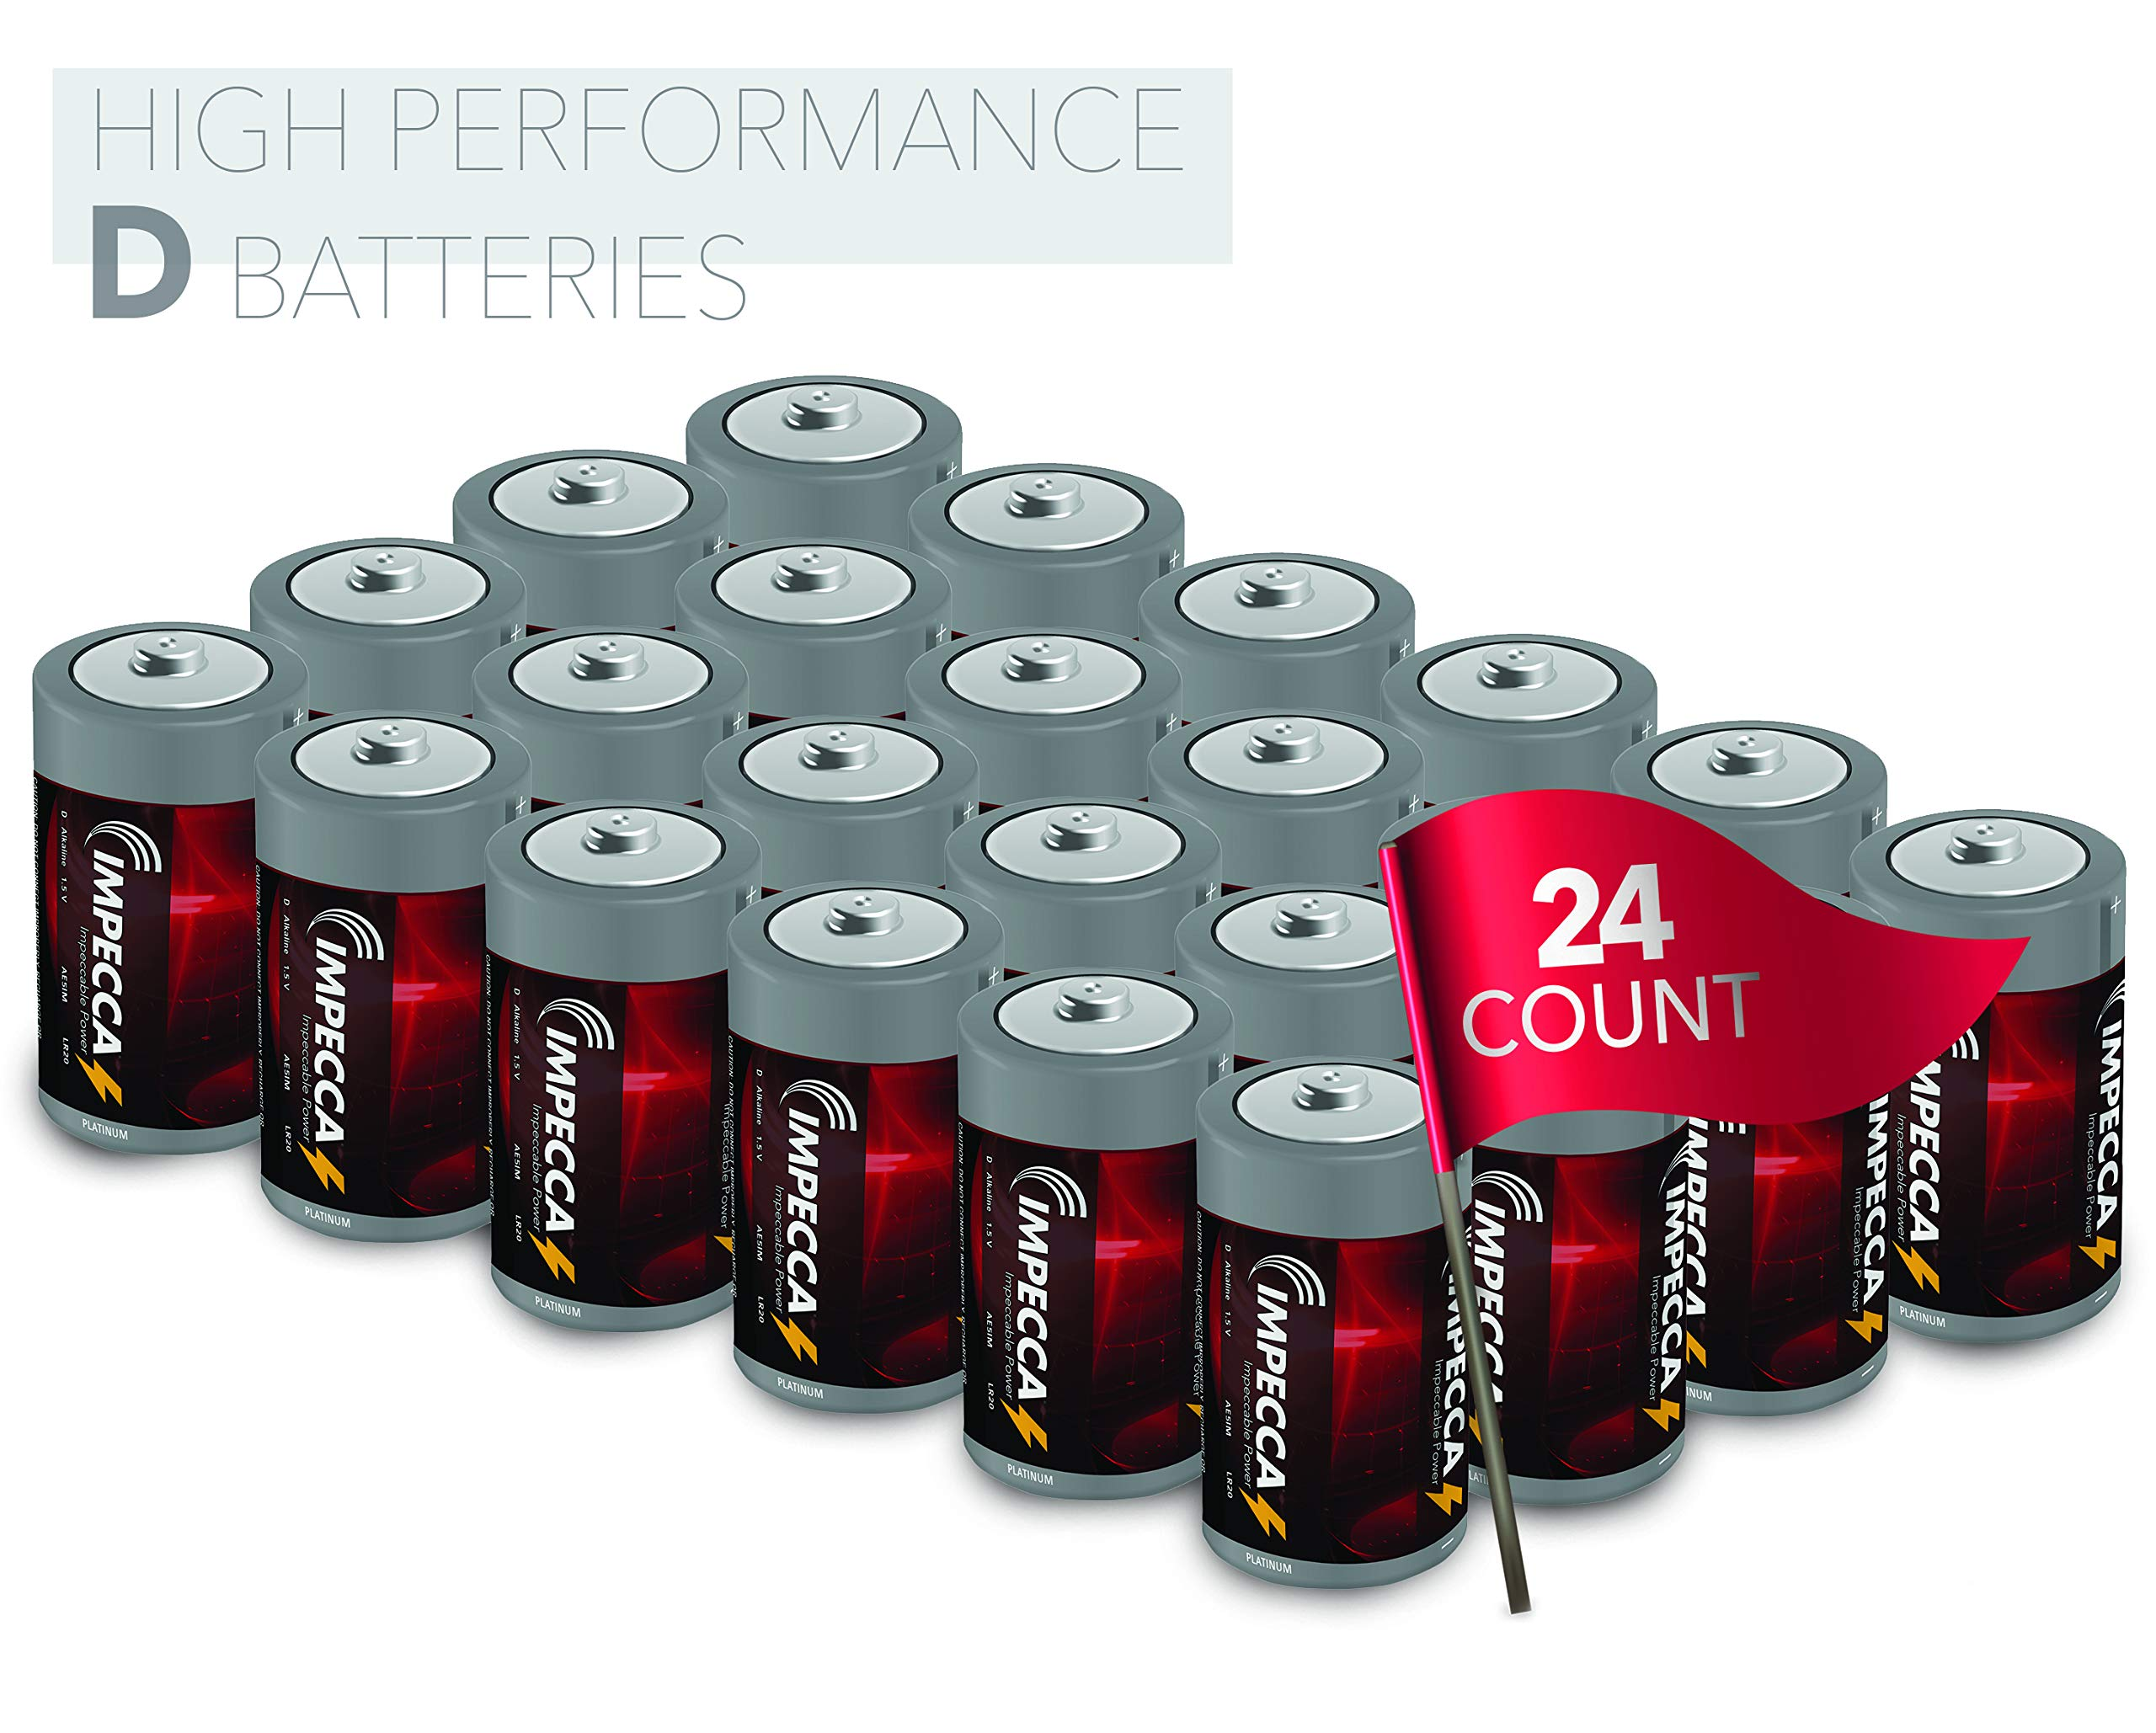 IMPECCA D Cell Batteries, LR20 (24-Pack) Everyday All Purpose Alkaline Battery, High Performance, Long Shelf Life, and Leak Resistant, D Size Battery, 24-Count - Platinum Series